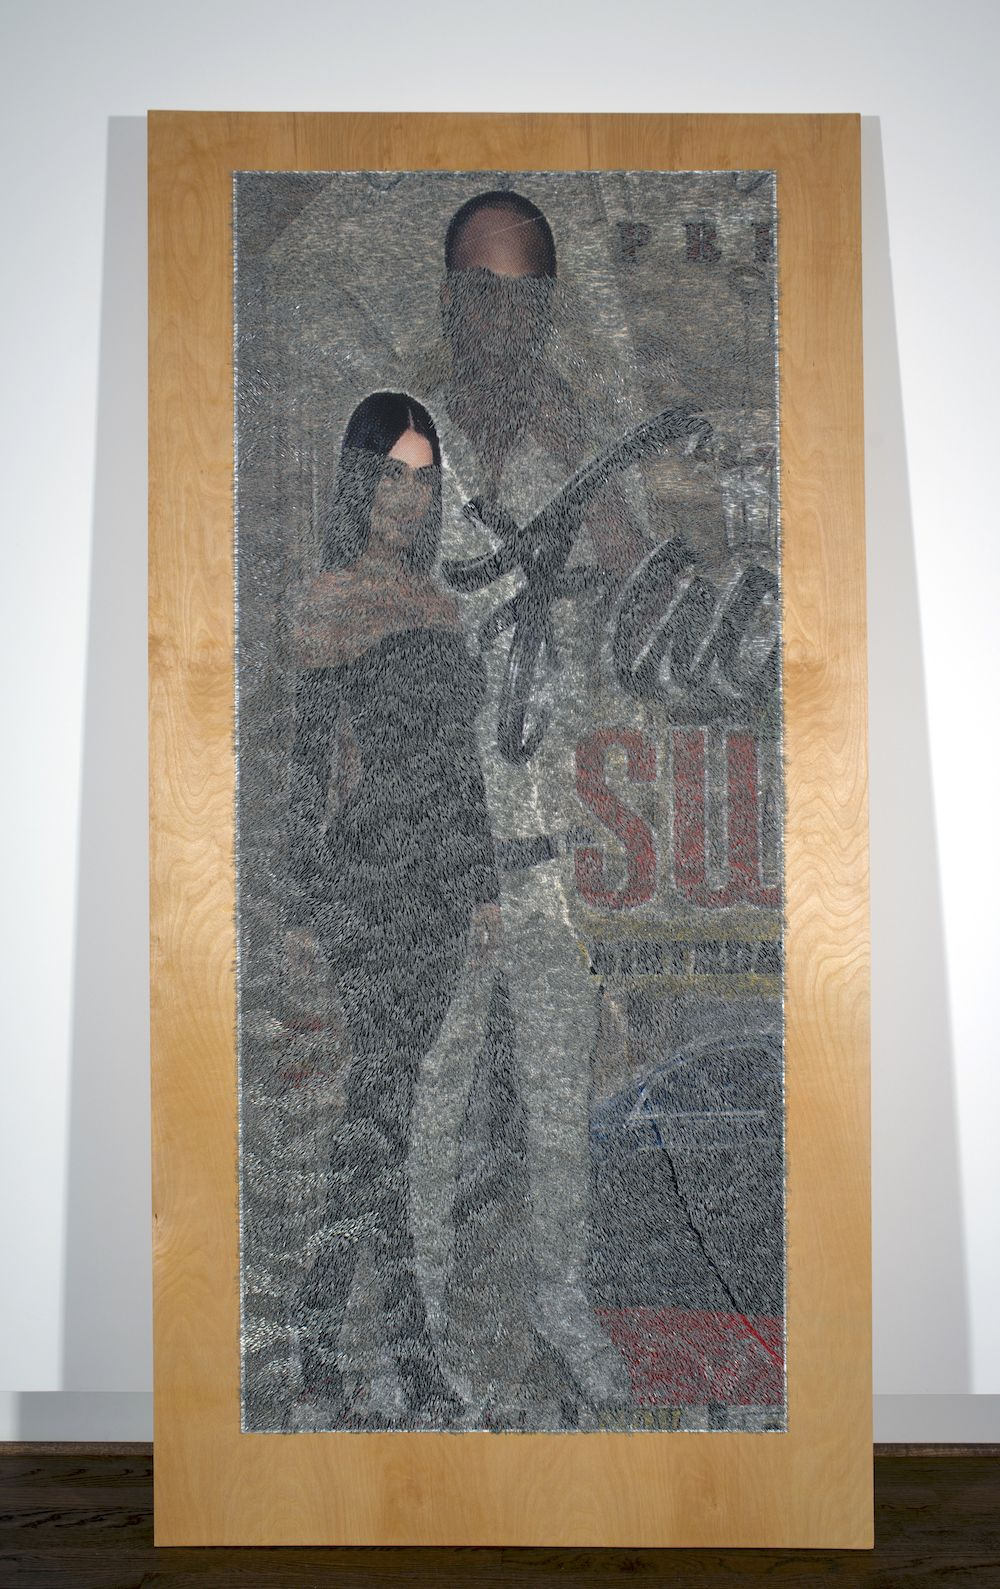 WILMER WILSON IV   PRE su  2018 staples and pigment print on wood 96 x 48 x 1.5 inches